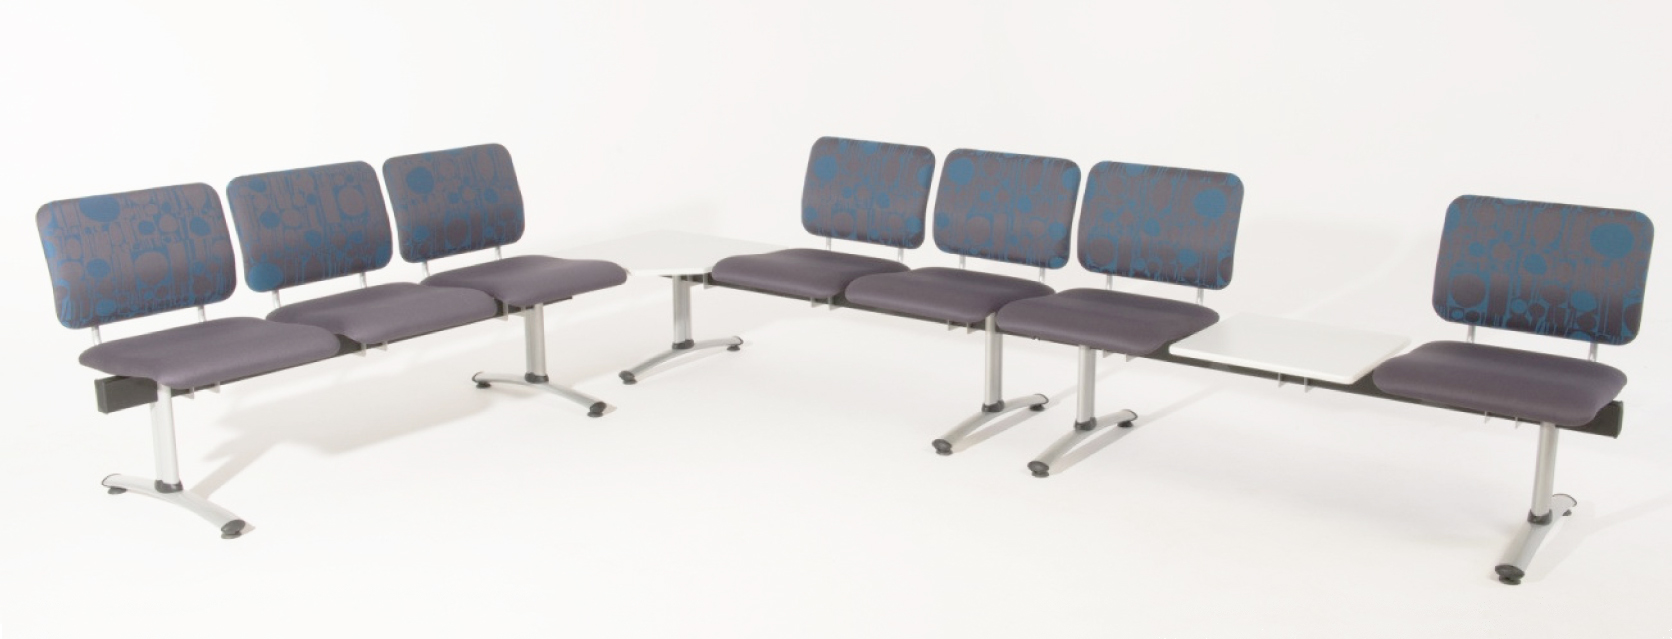 Configuration of beam seating with every 3 seats separated by an integral table including a corner table